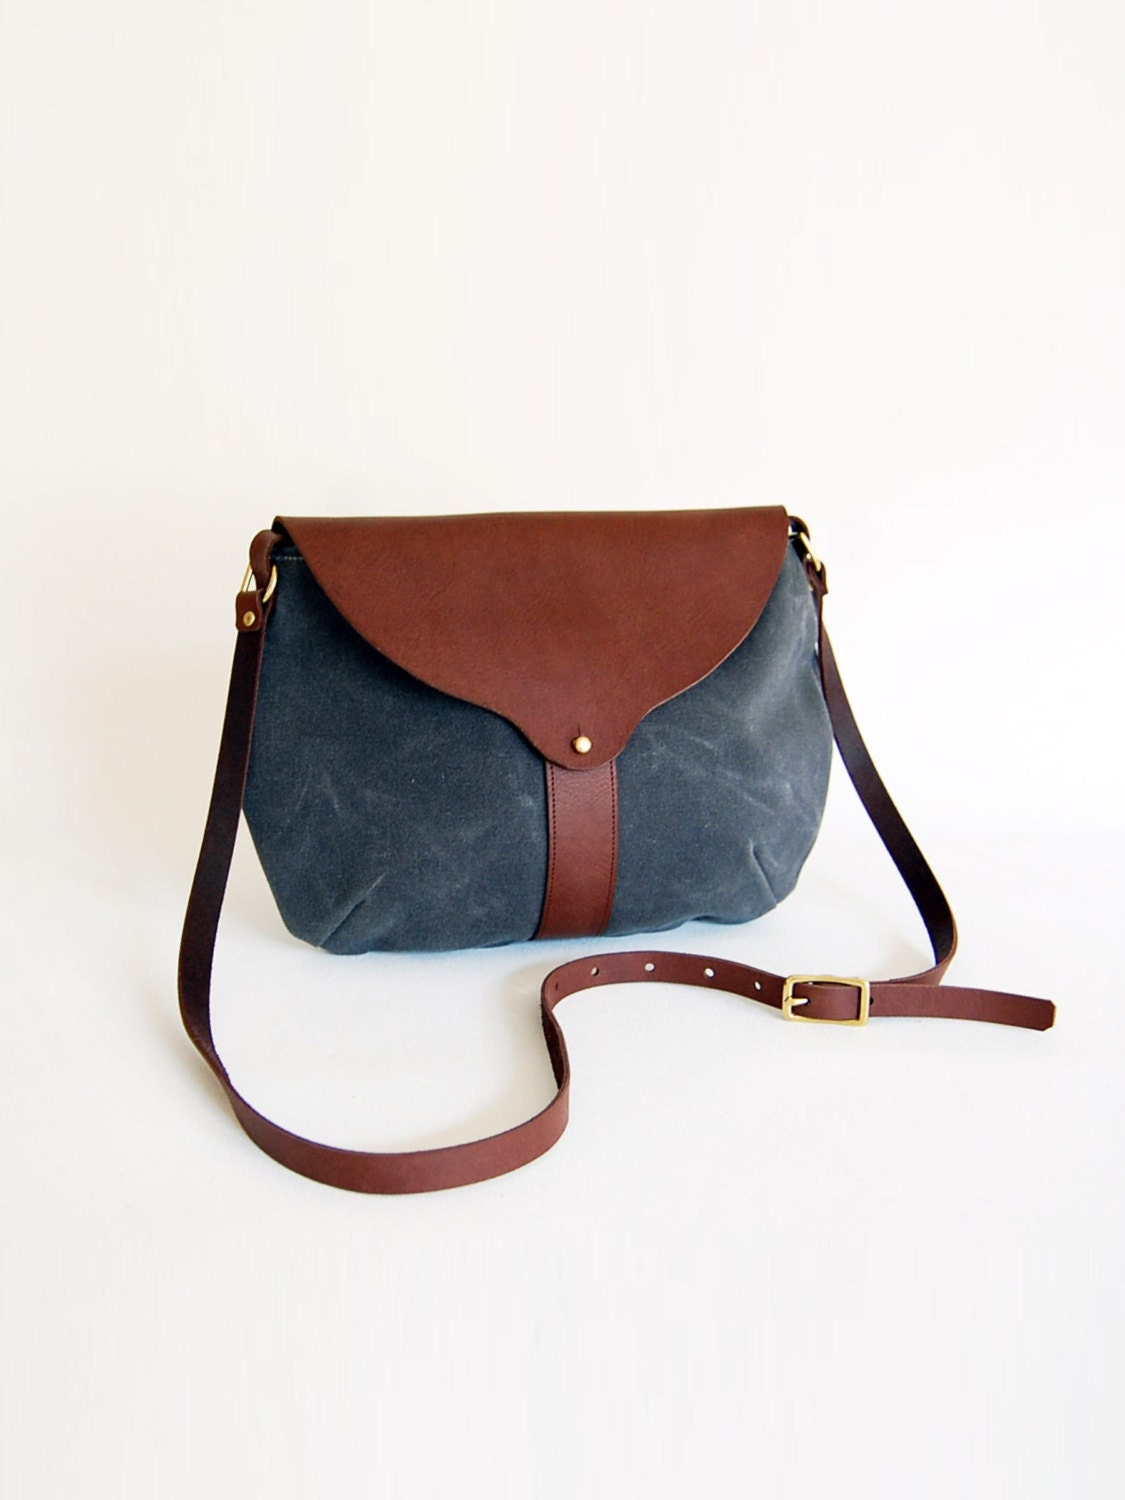 The Taplin Purse in Charcoal Waxed Canvas with Dusty Jade Lining